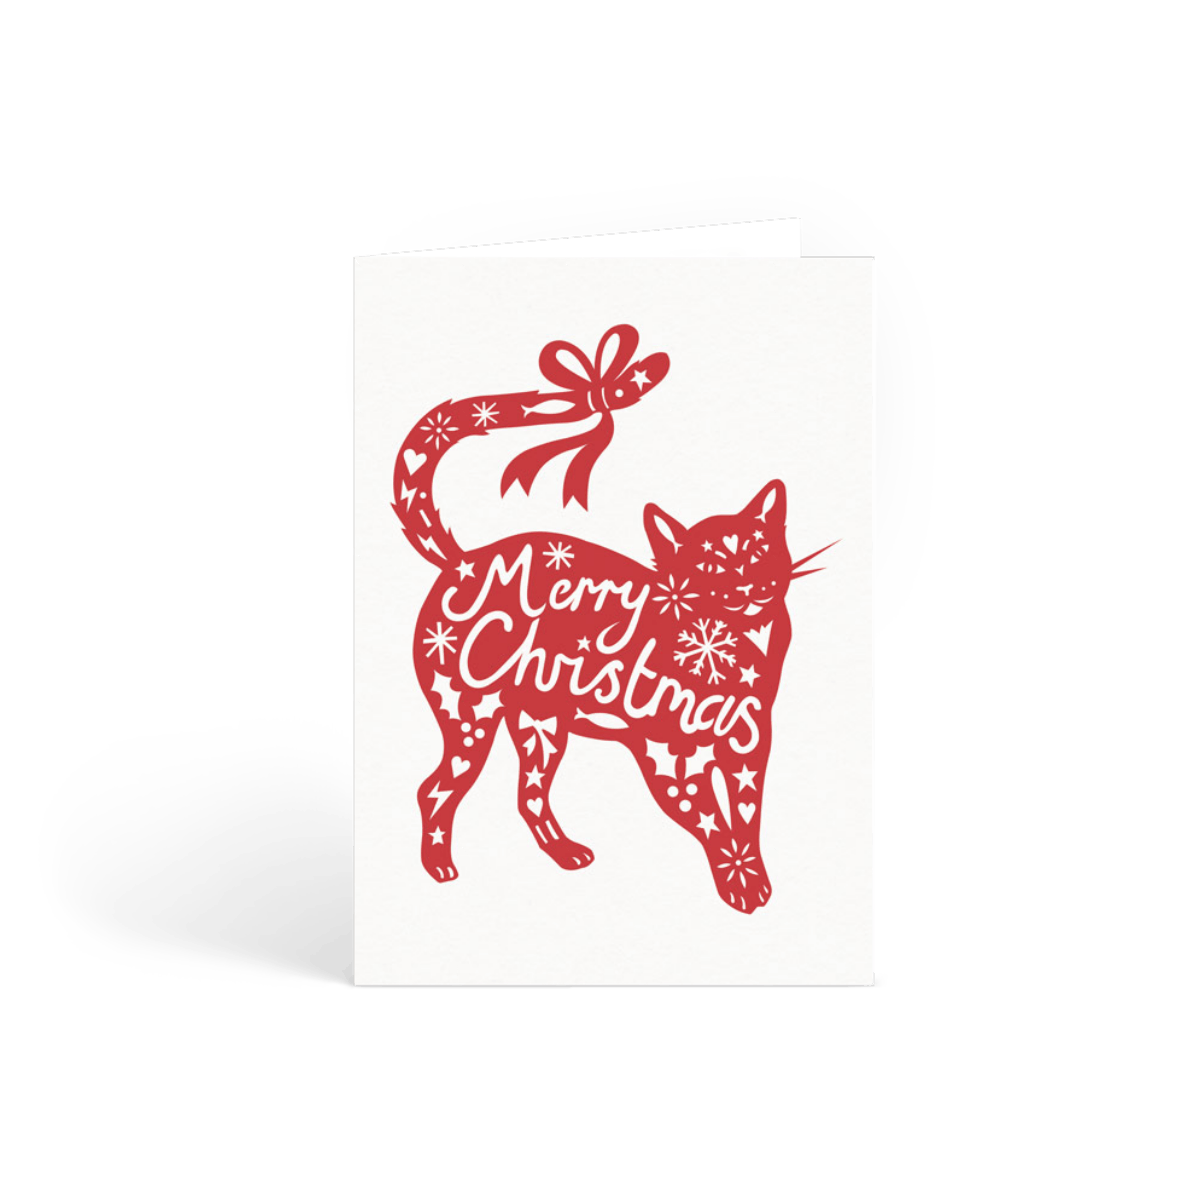 Https%3a%2f%2fwww.papier.com%2fproduct image%2f58957%2f2%2fchristmas cat 14063 front 1542973748.png?ixlib=rb 1.1